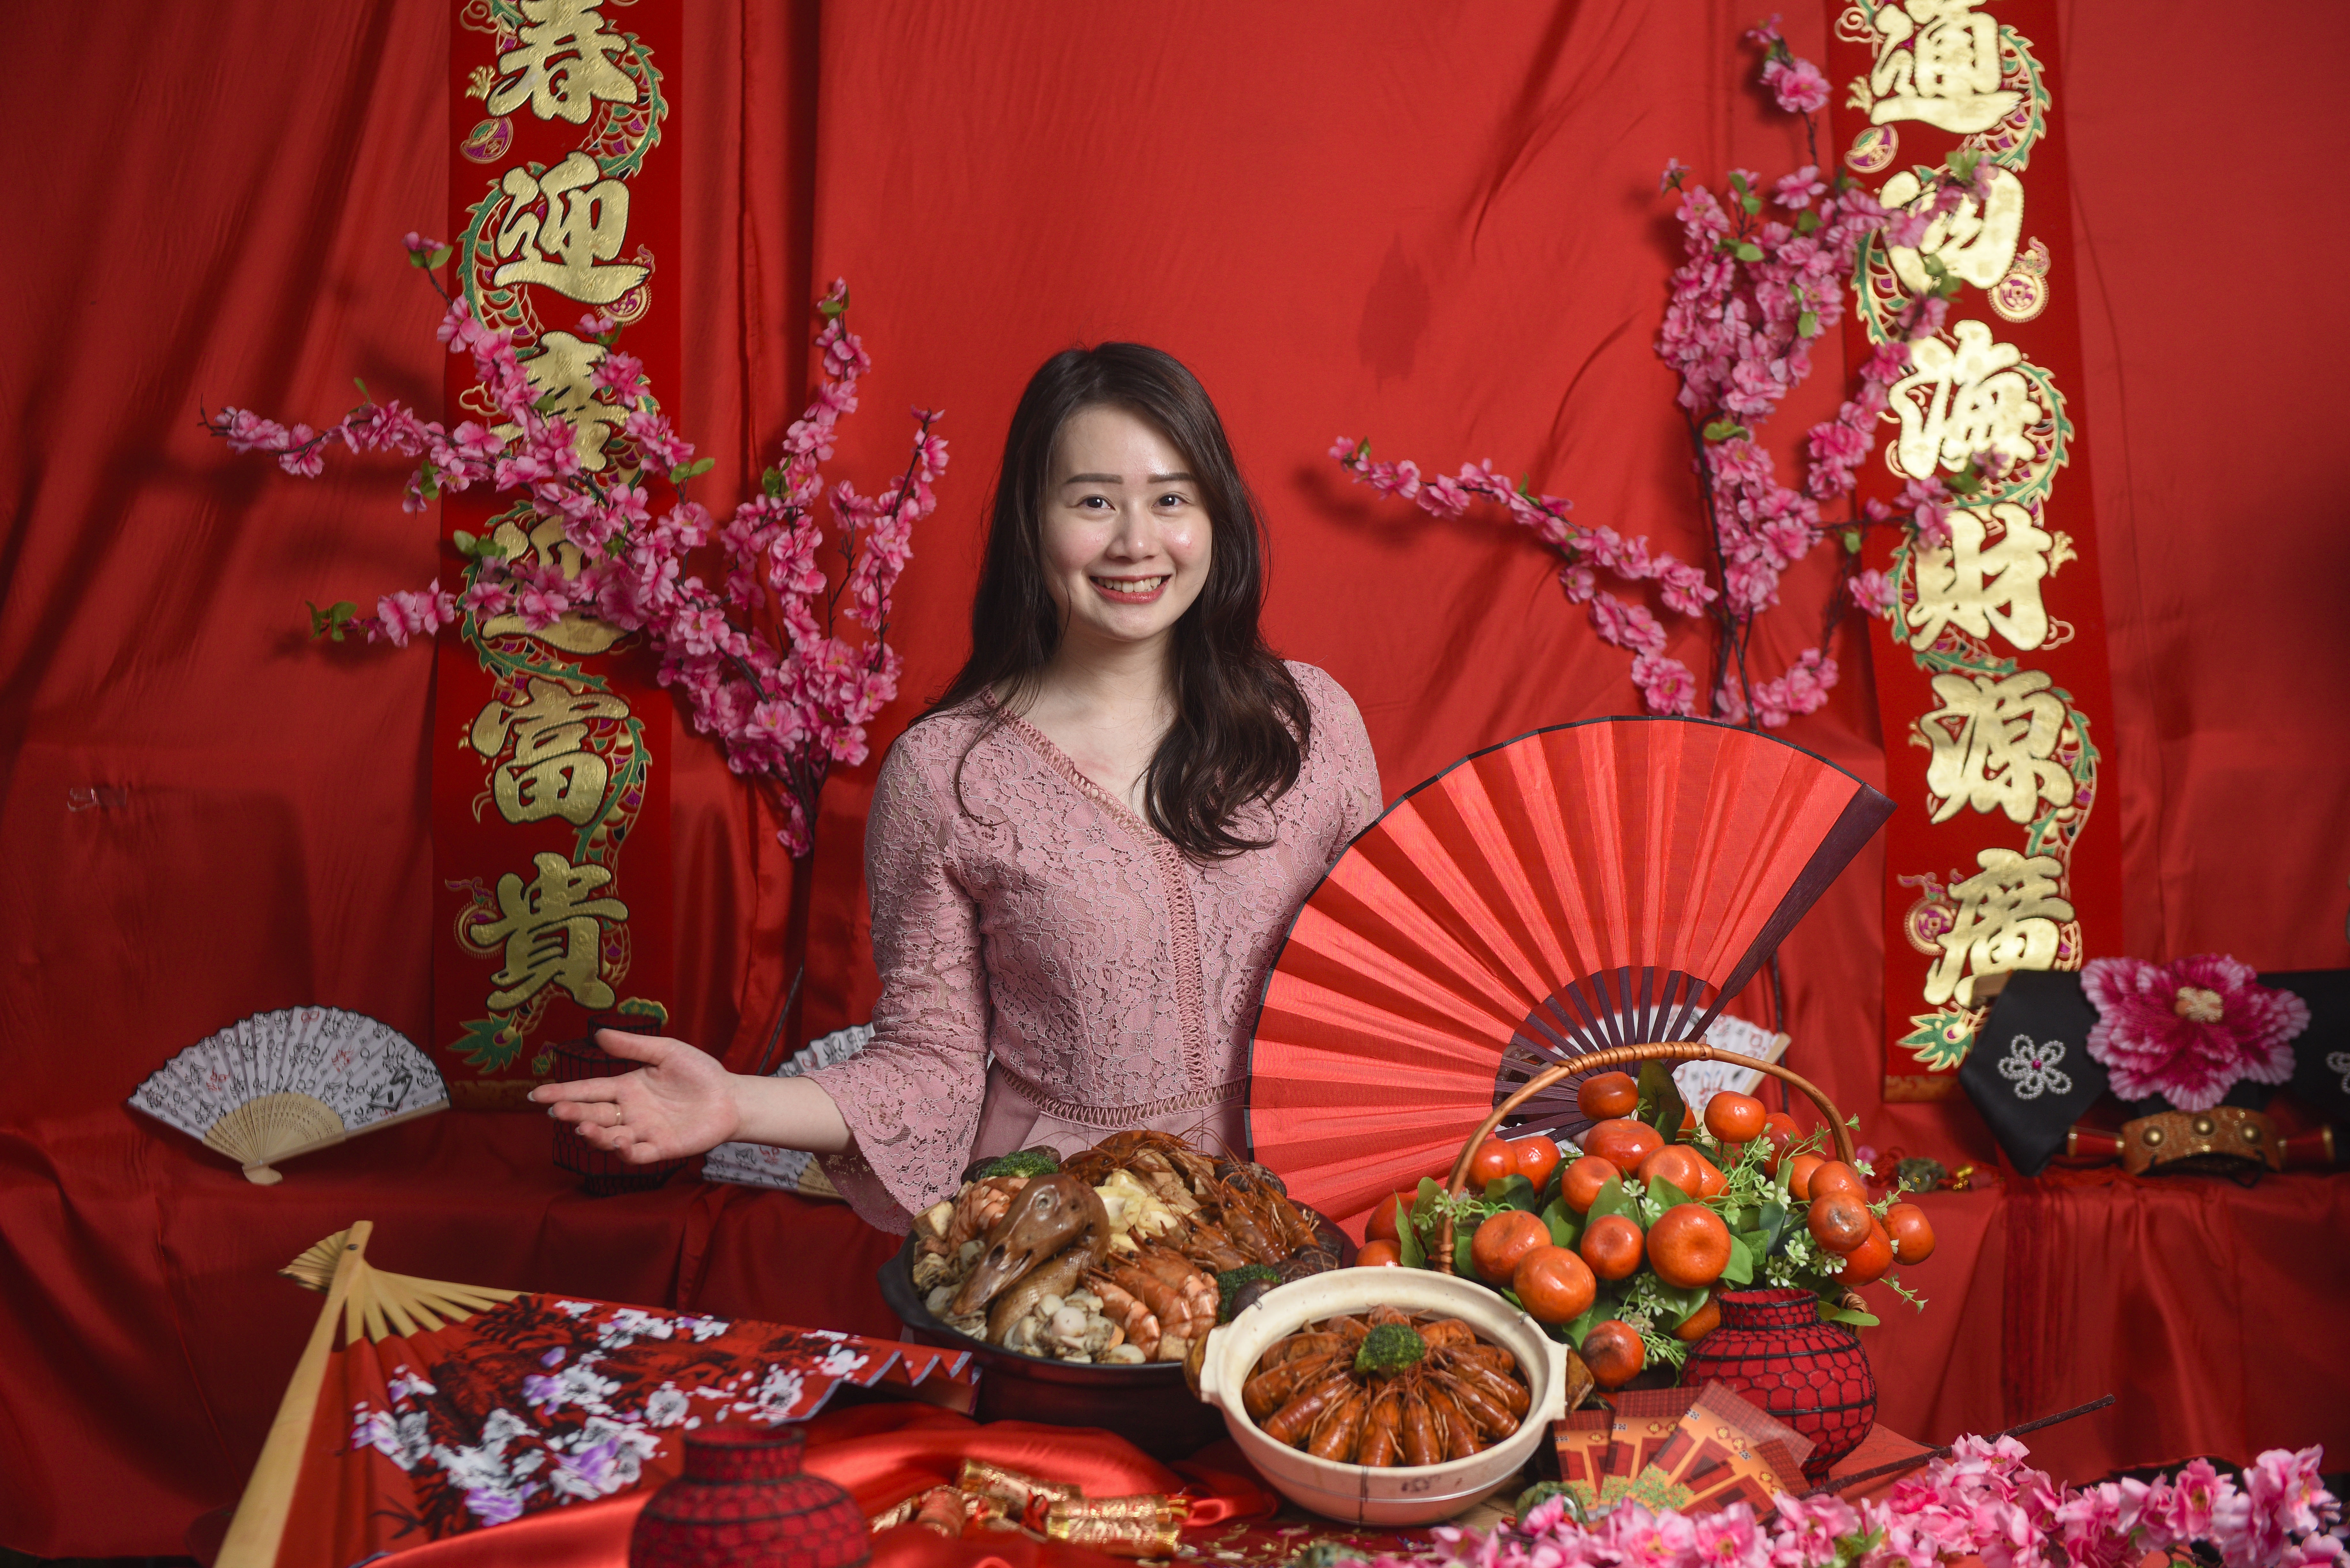 runningmen catering chinese new year 2021 cny poon choi with ambassador